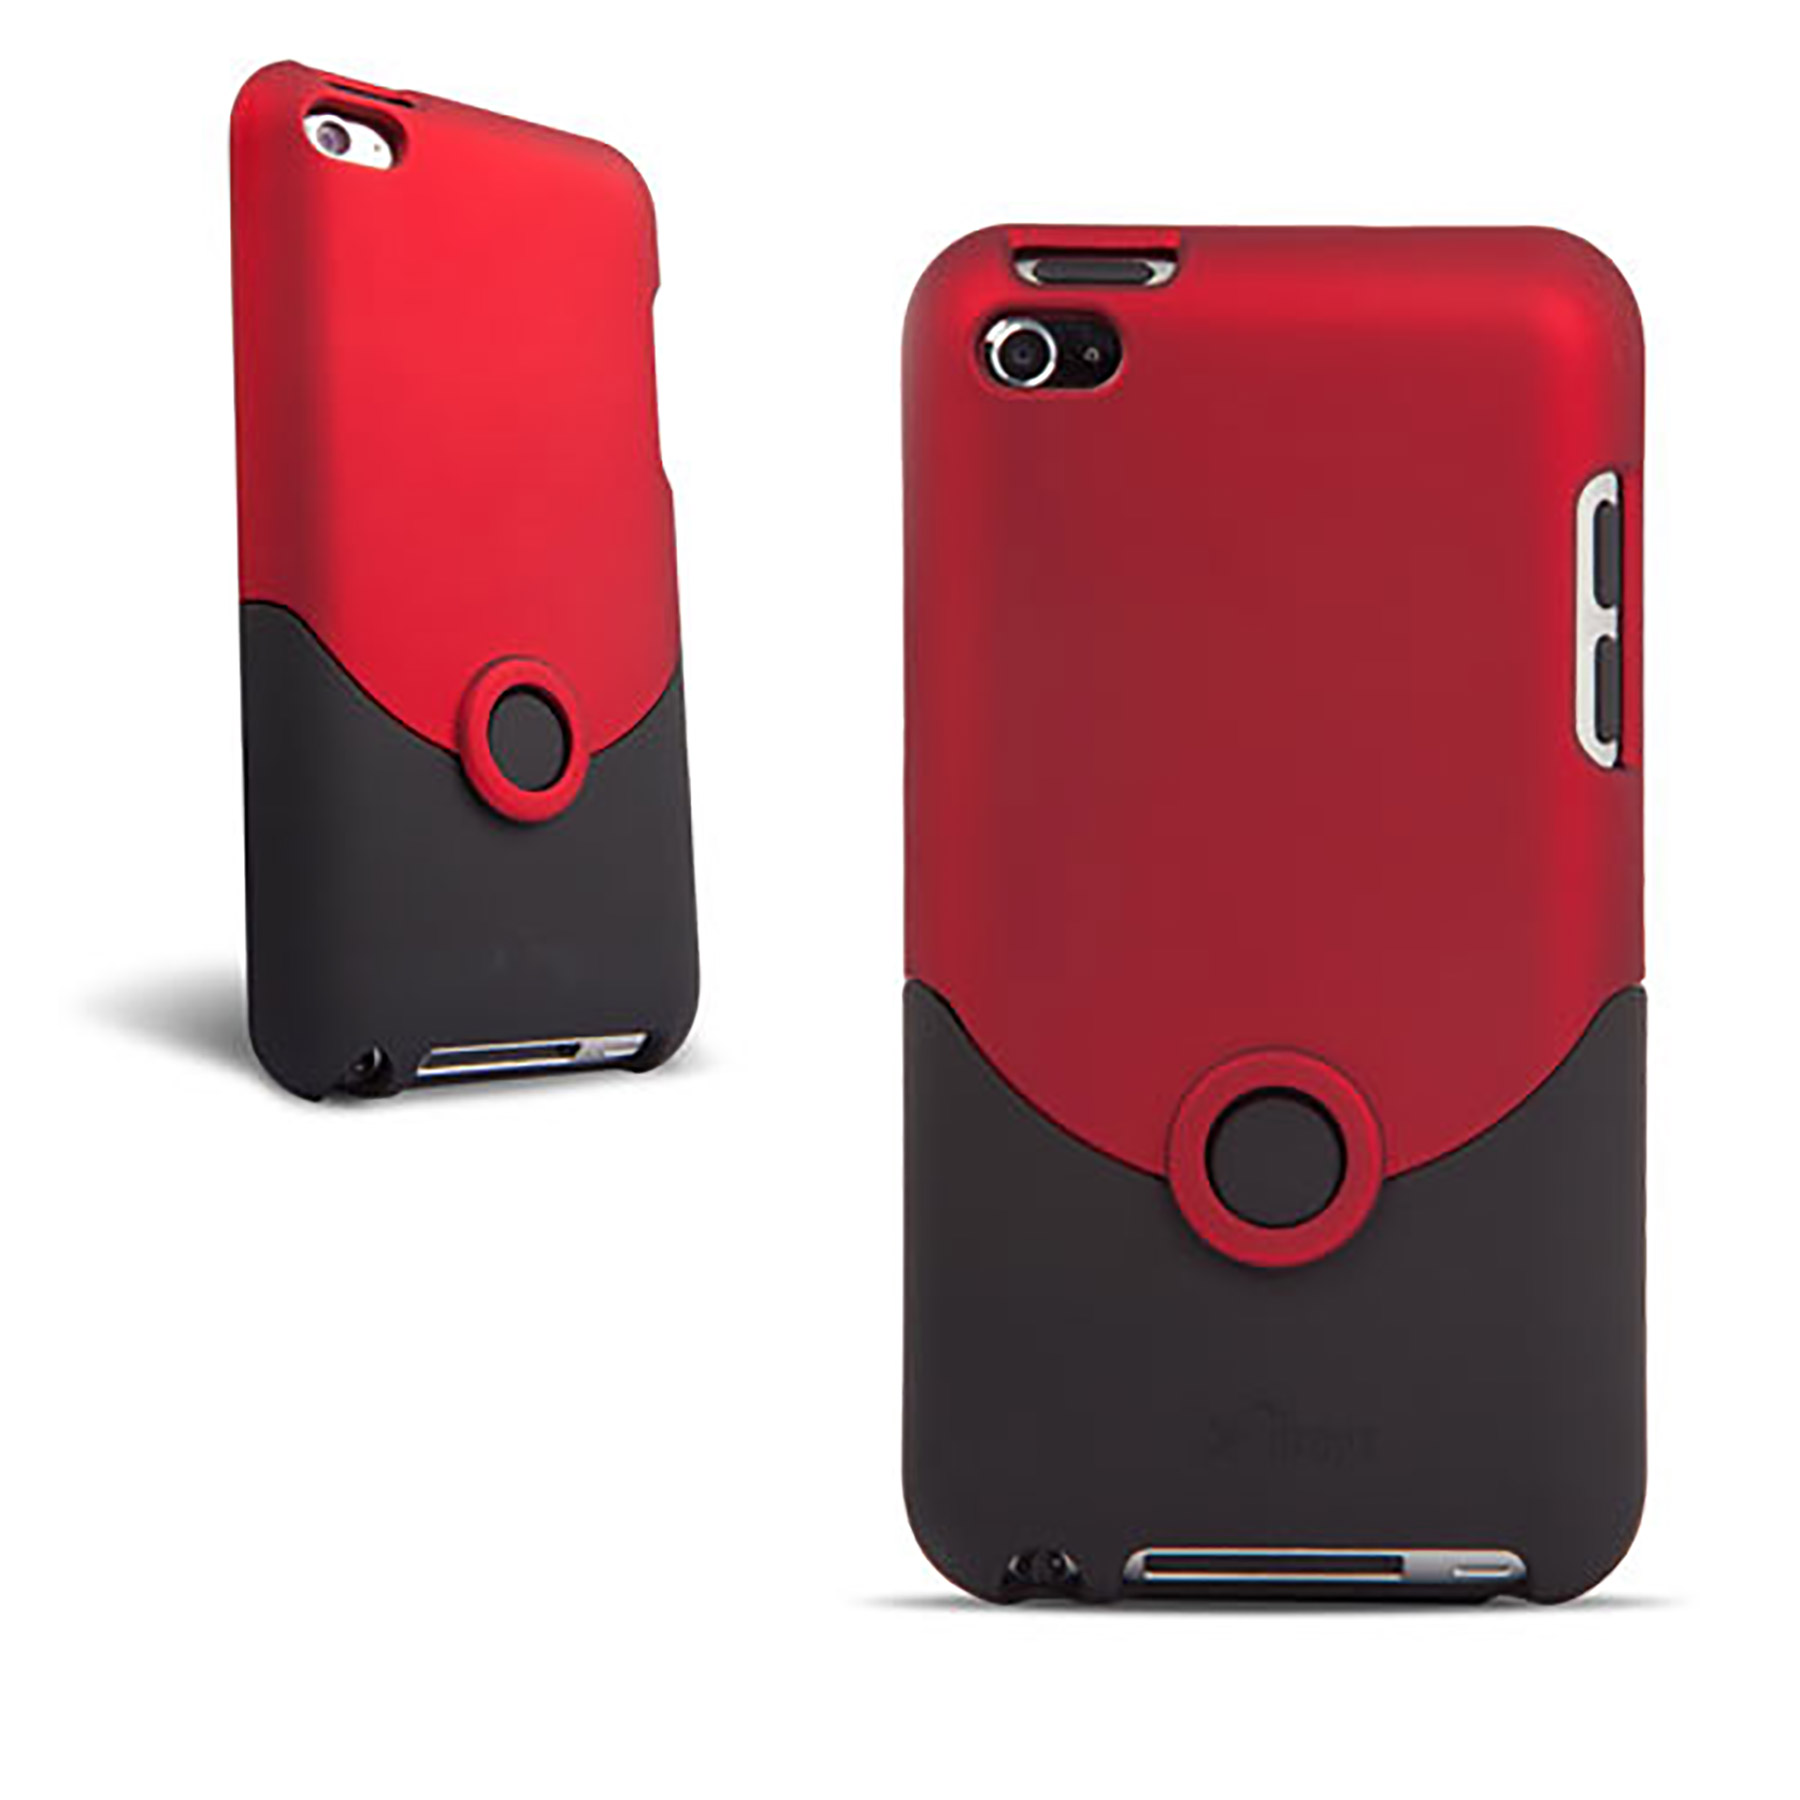 ipod touch 4g case luxe original red black ifrogz. Black Bedroom Furniture Sets. Home Design Ideas